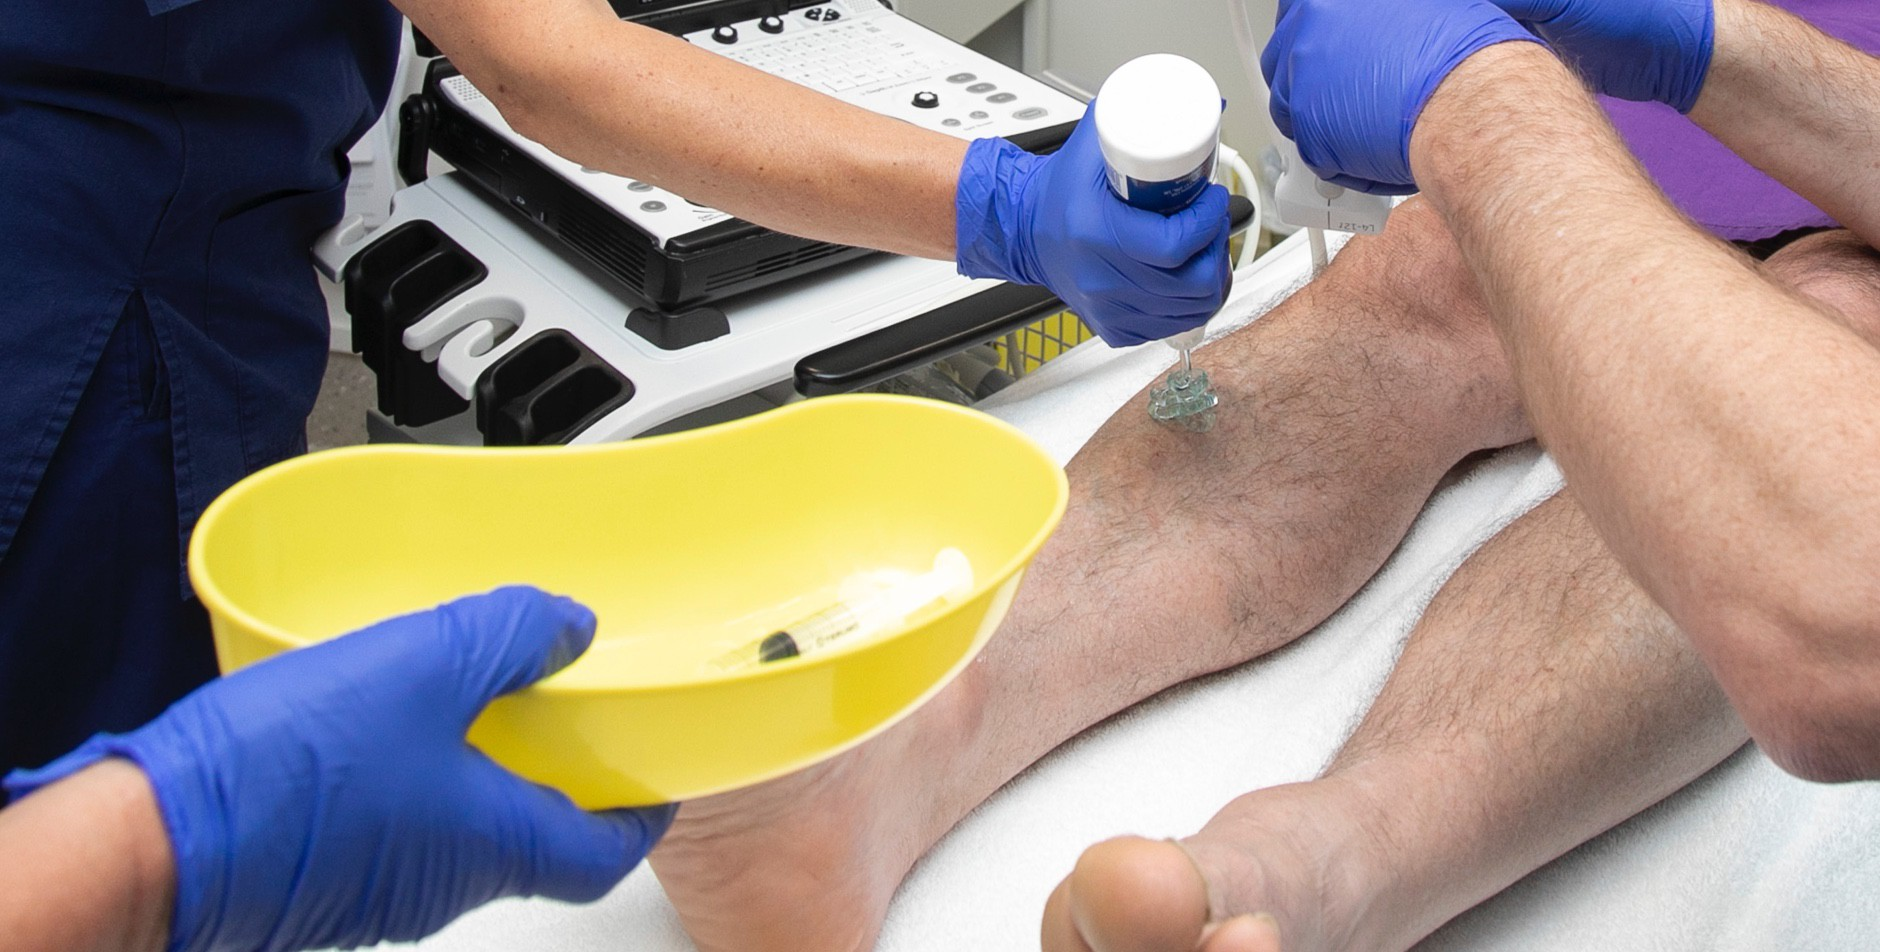 Some varicose veins will be treated in as little as 15 minutes.